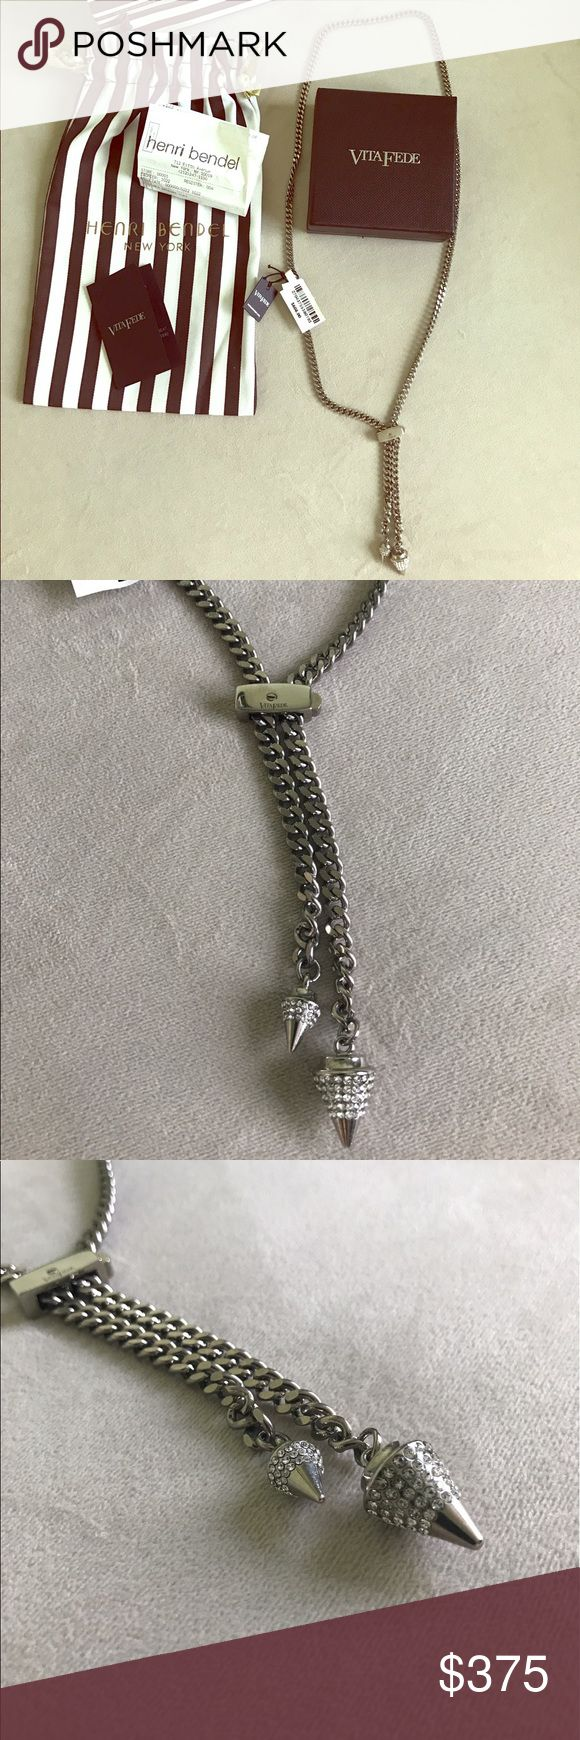 Vida Fede Silver Titan Crystal Arrow Necklace Purchased from Henri Bendel in NYC on 5th Avenue. It was a display item which they marked down to $508 + tax, so I purchased it and just never wore it. Retail is $608 + tax. Swarovski Crystal on arrows.  It's in perfect condition besides microscopic wear from people trying it on (it doesn't even show in photos and can't be seen easily).   Comes with original tags, box, receipt, bags, card. Vita Fede Jewelry Necklaces